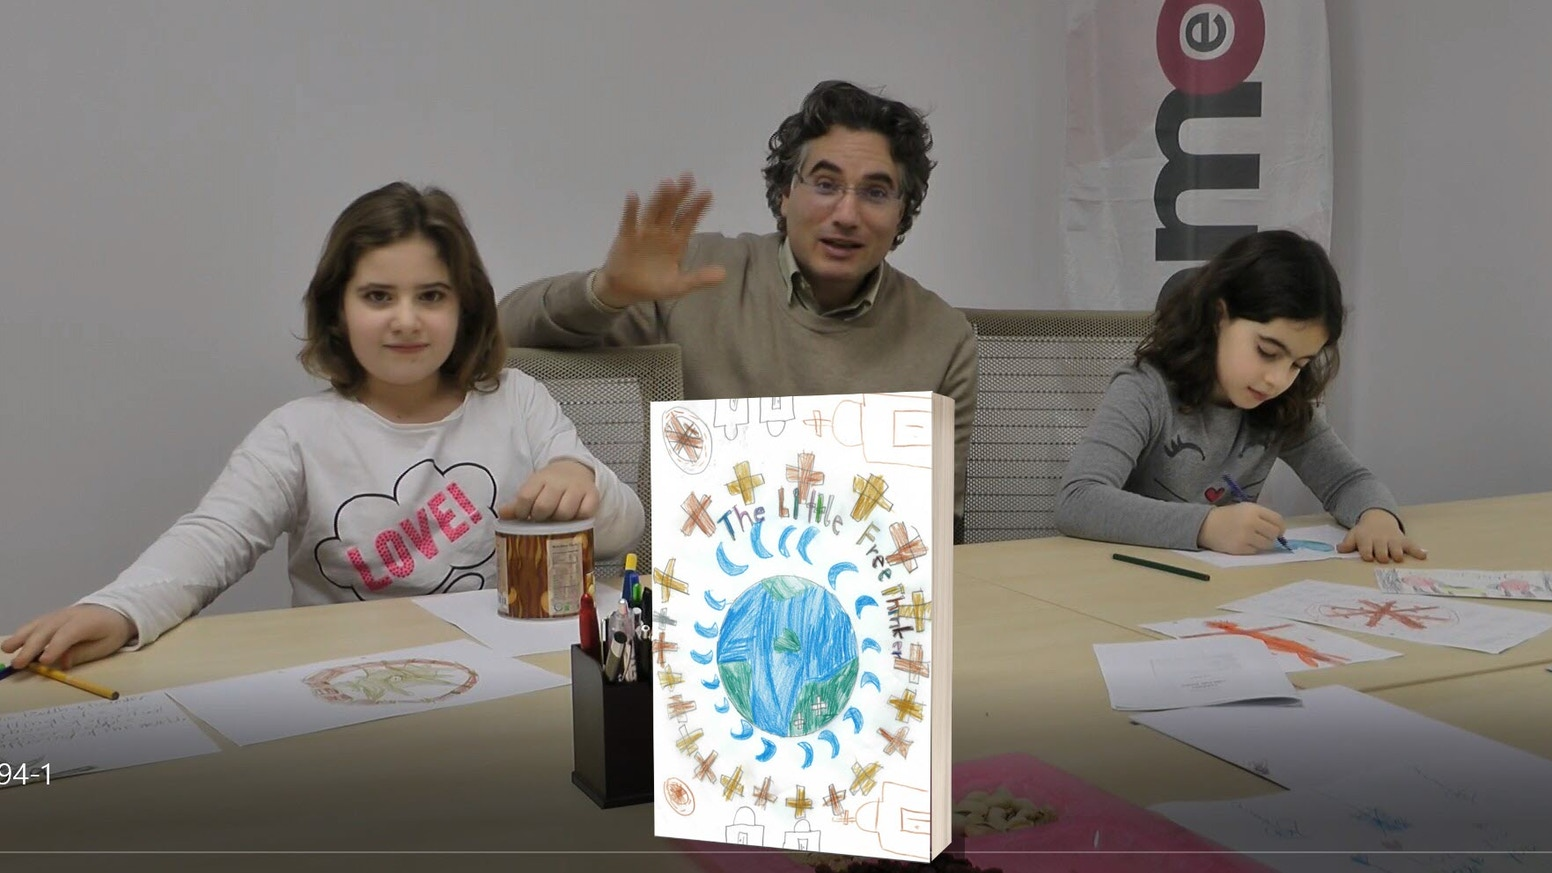 Get an inspirational book about who we are & where we´ll go, painted by free thinking kids from different cultures. Bring warmth & joy in your relationships by using this book as ice-breaker to talk about the really important questions in life.